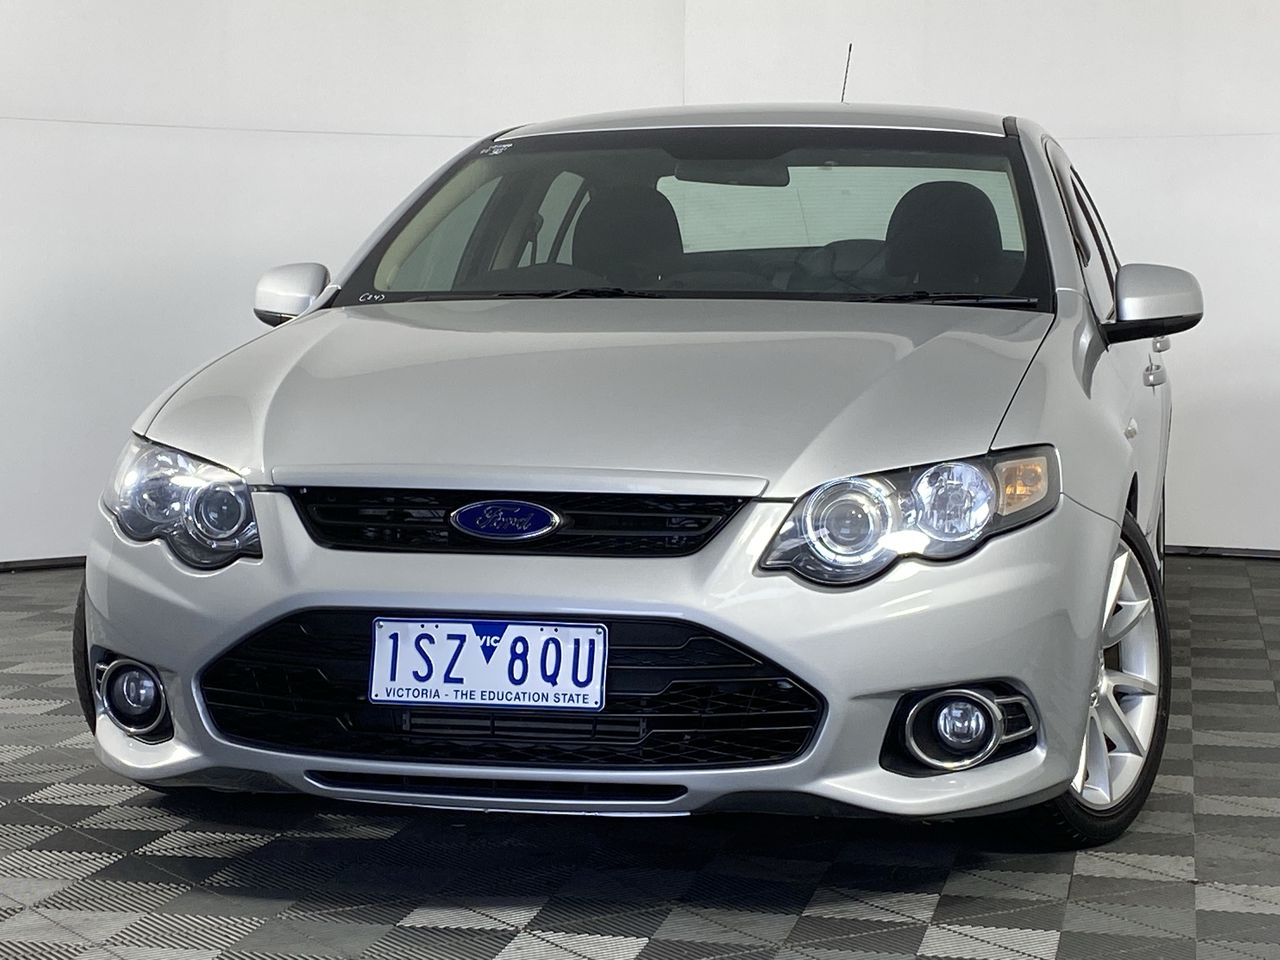 2014 Ford Falcon XR6T FG II Automatic Sedan(WOVR+INSPECTED)